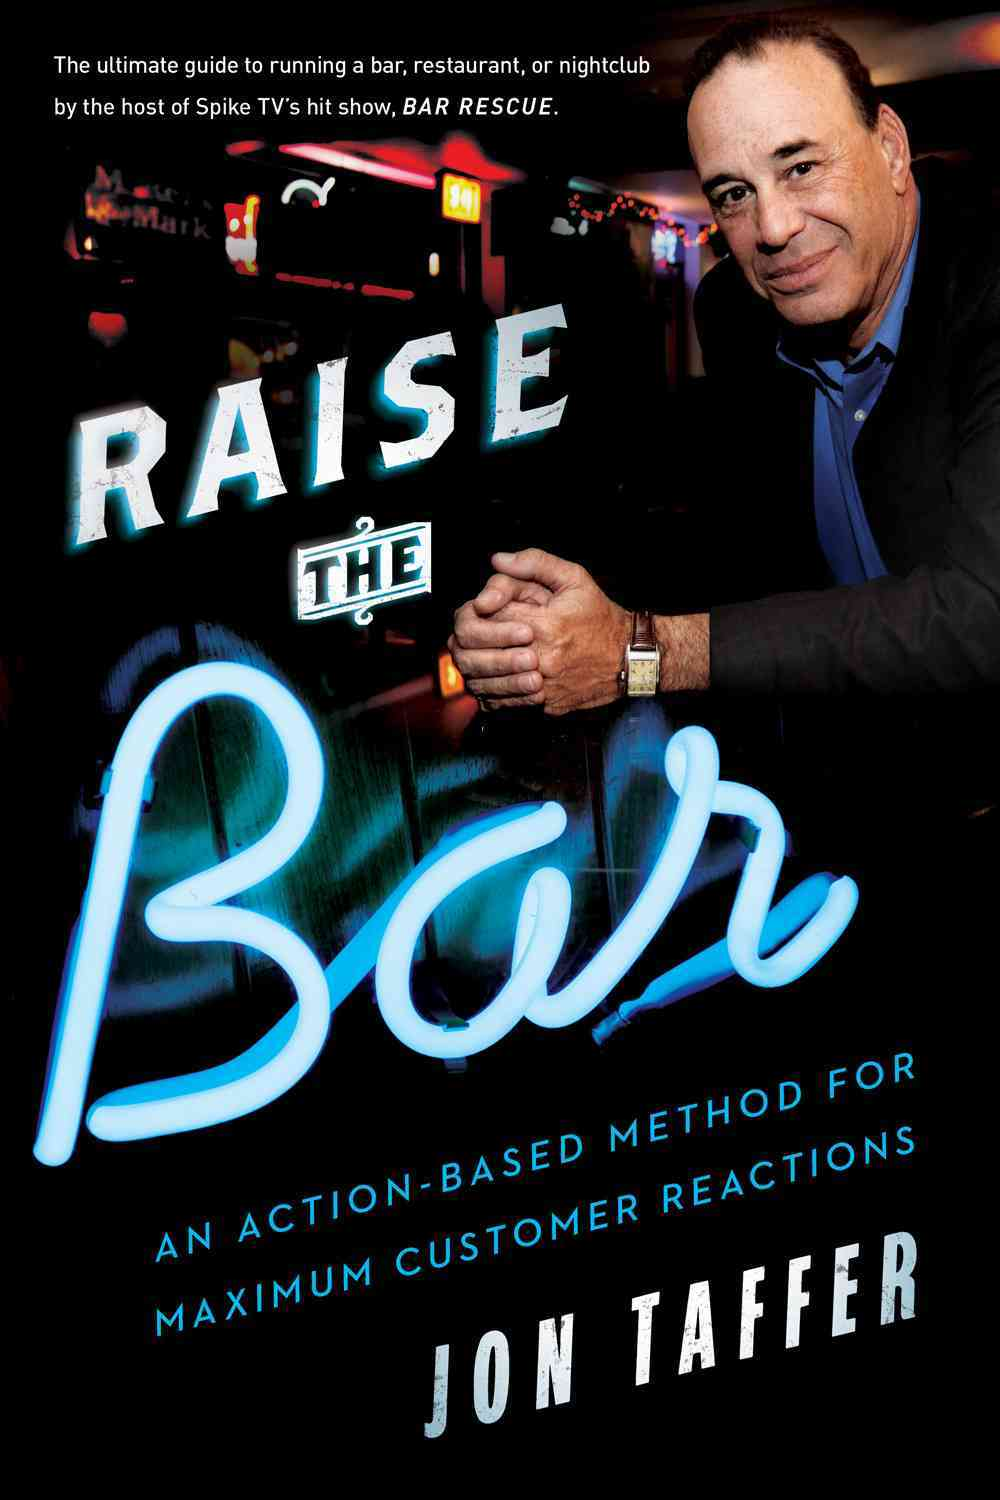 Raise the Bar: An Action-Based Method for Maximum Customer Reactions (Hardcover)